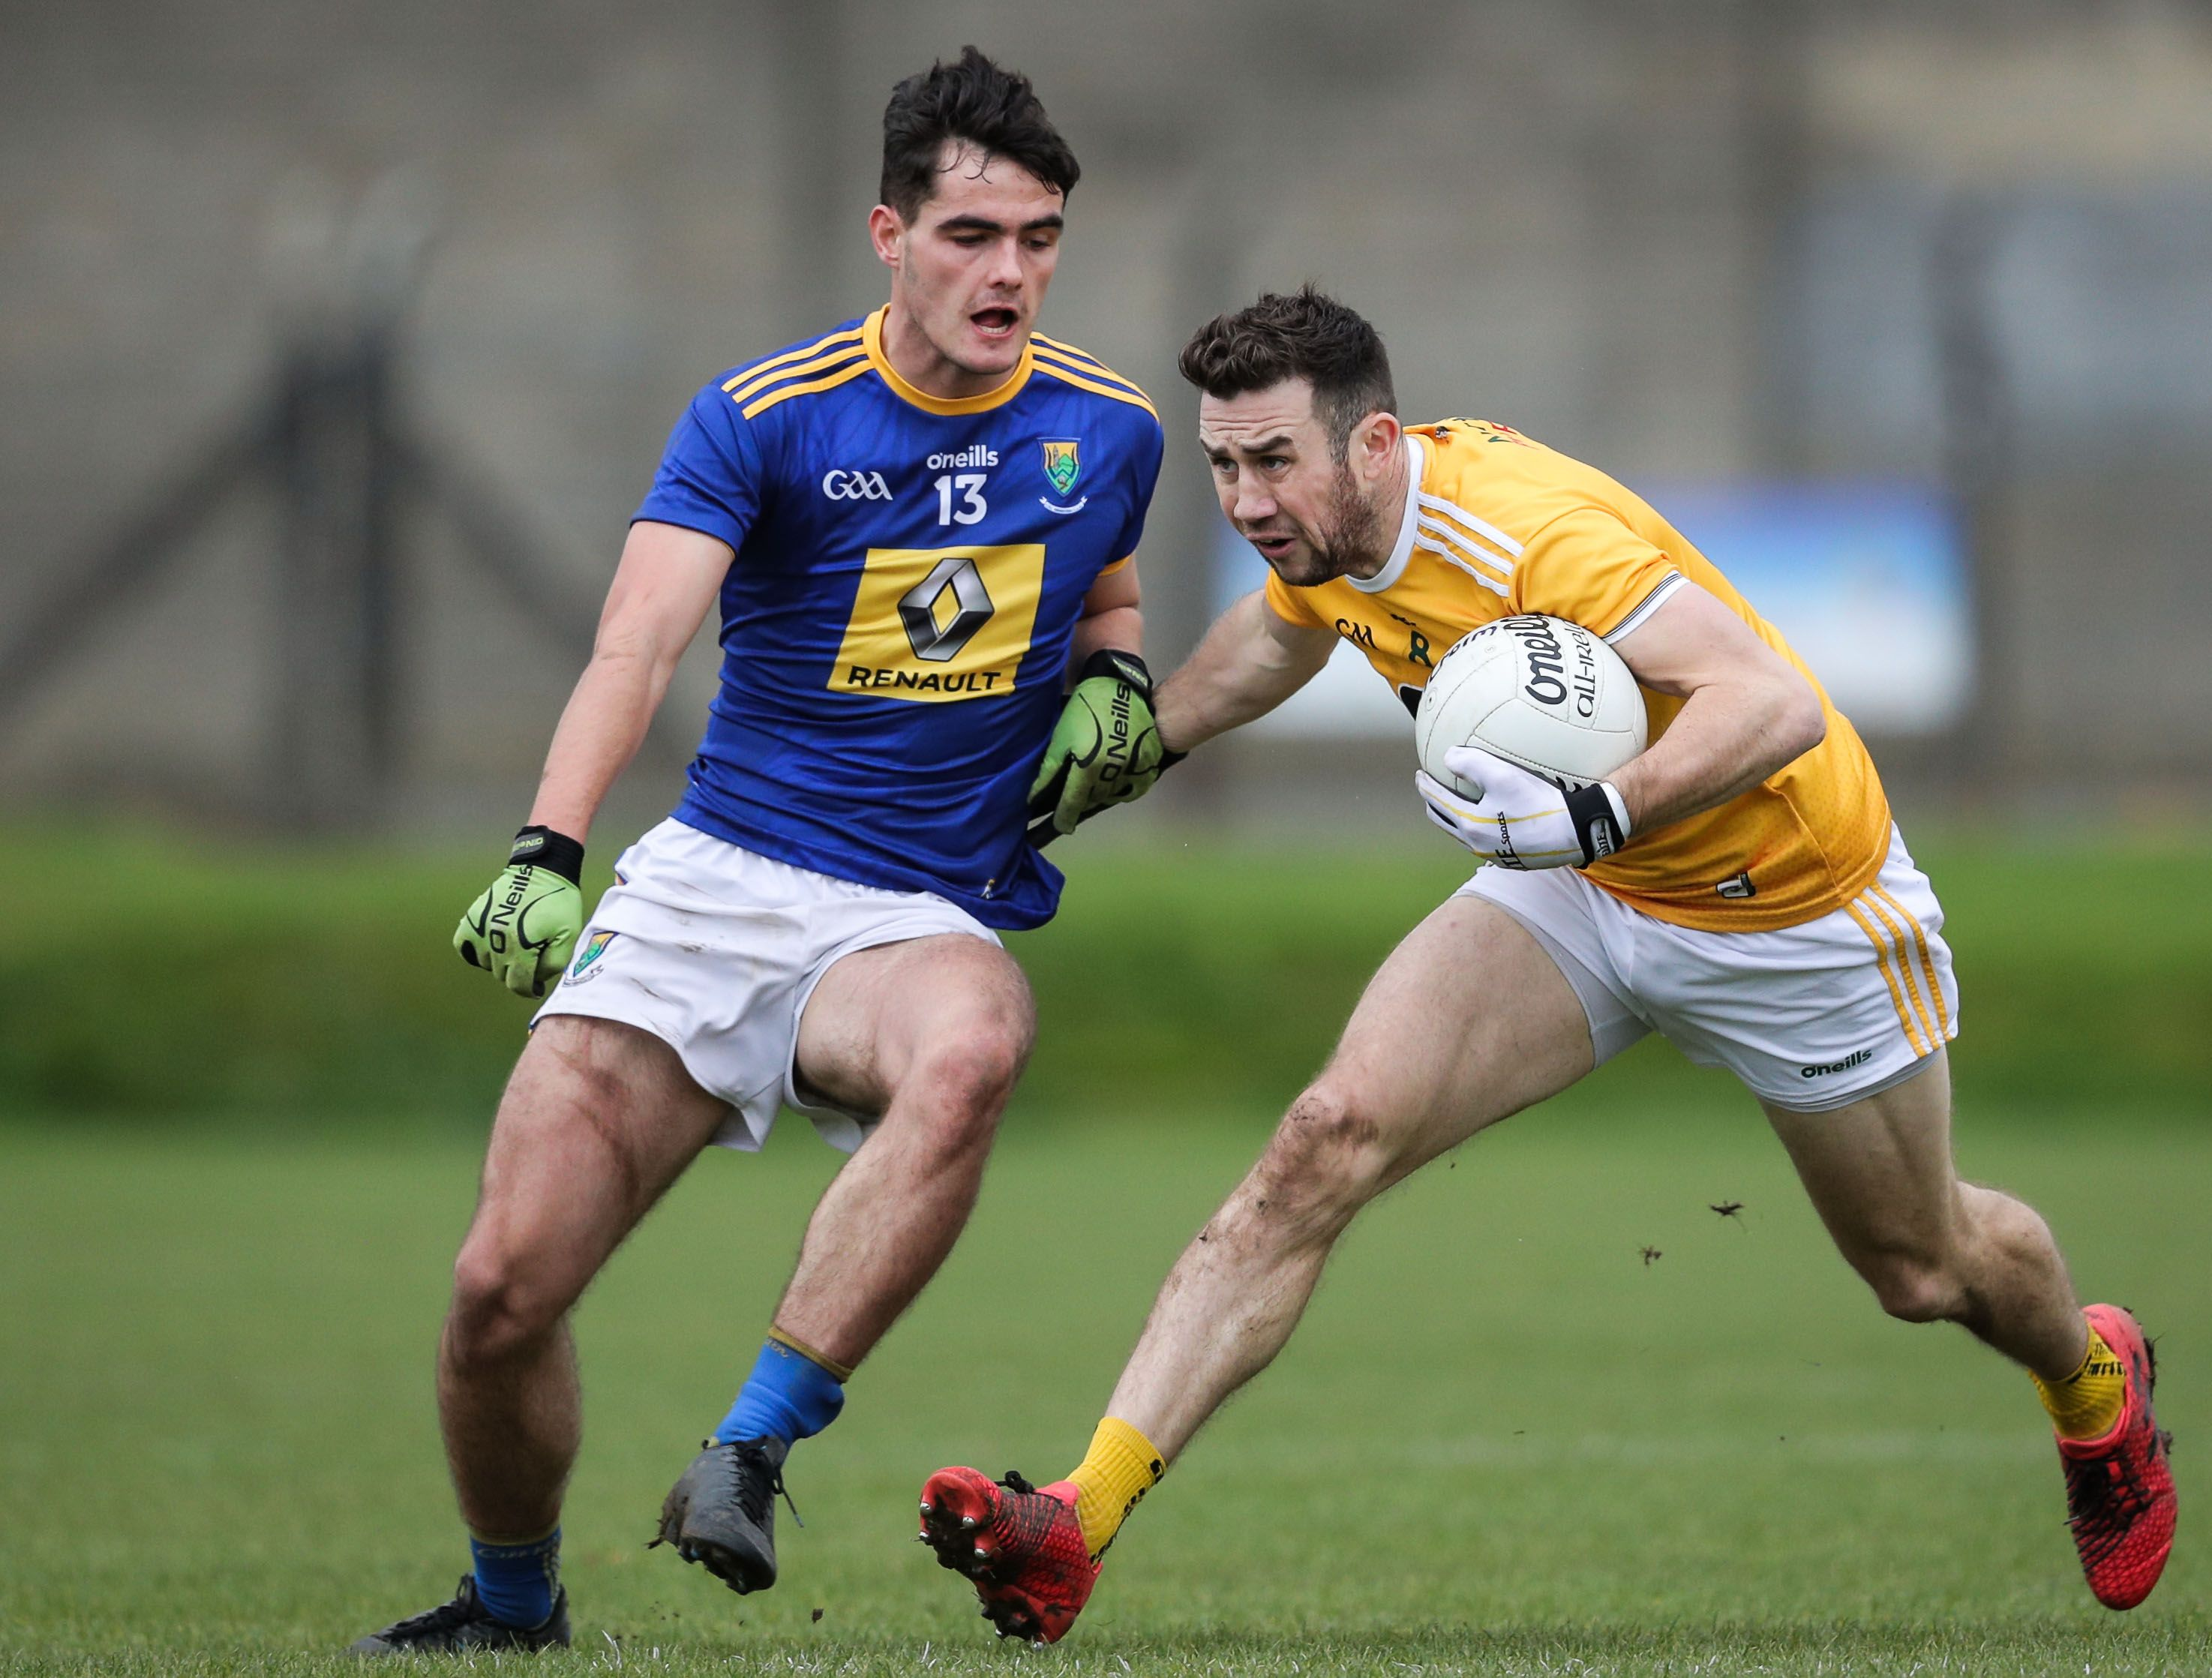 Antrim now sit on top of Division Four despite last week\'s heavy loss in Wicklow, but will drop out of the promotion places if results don\'t go their way on Saturday